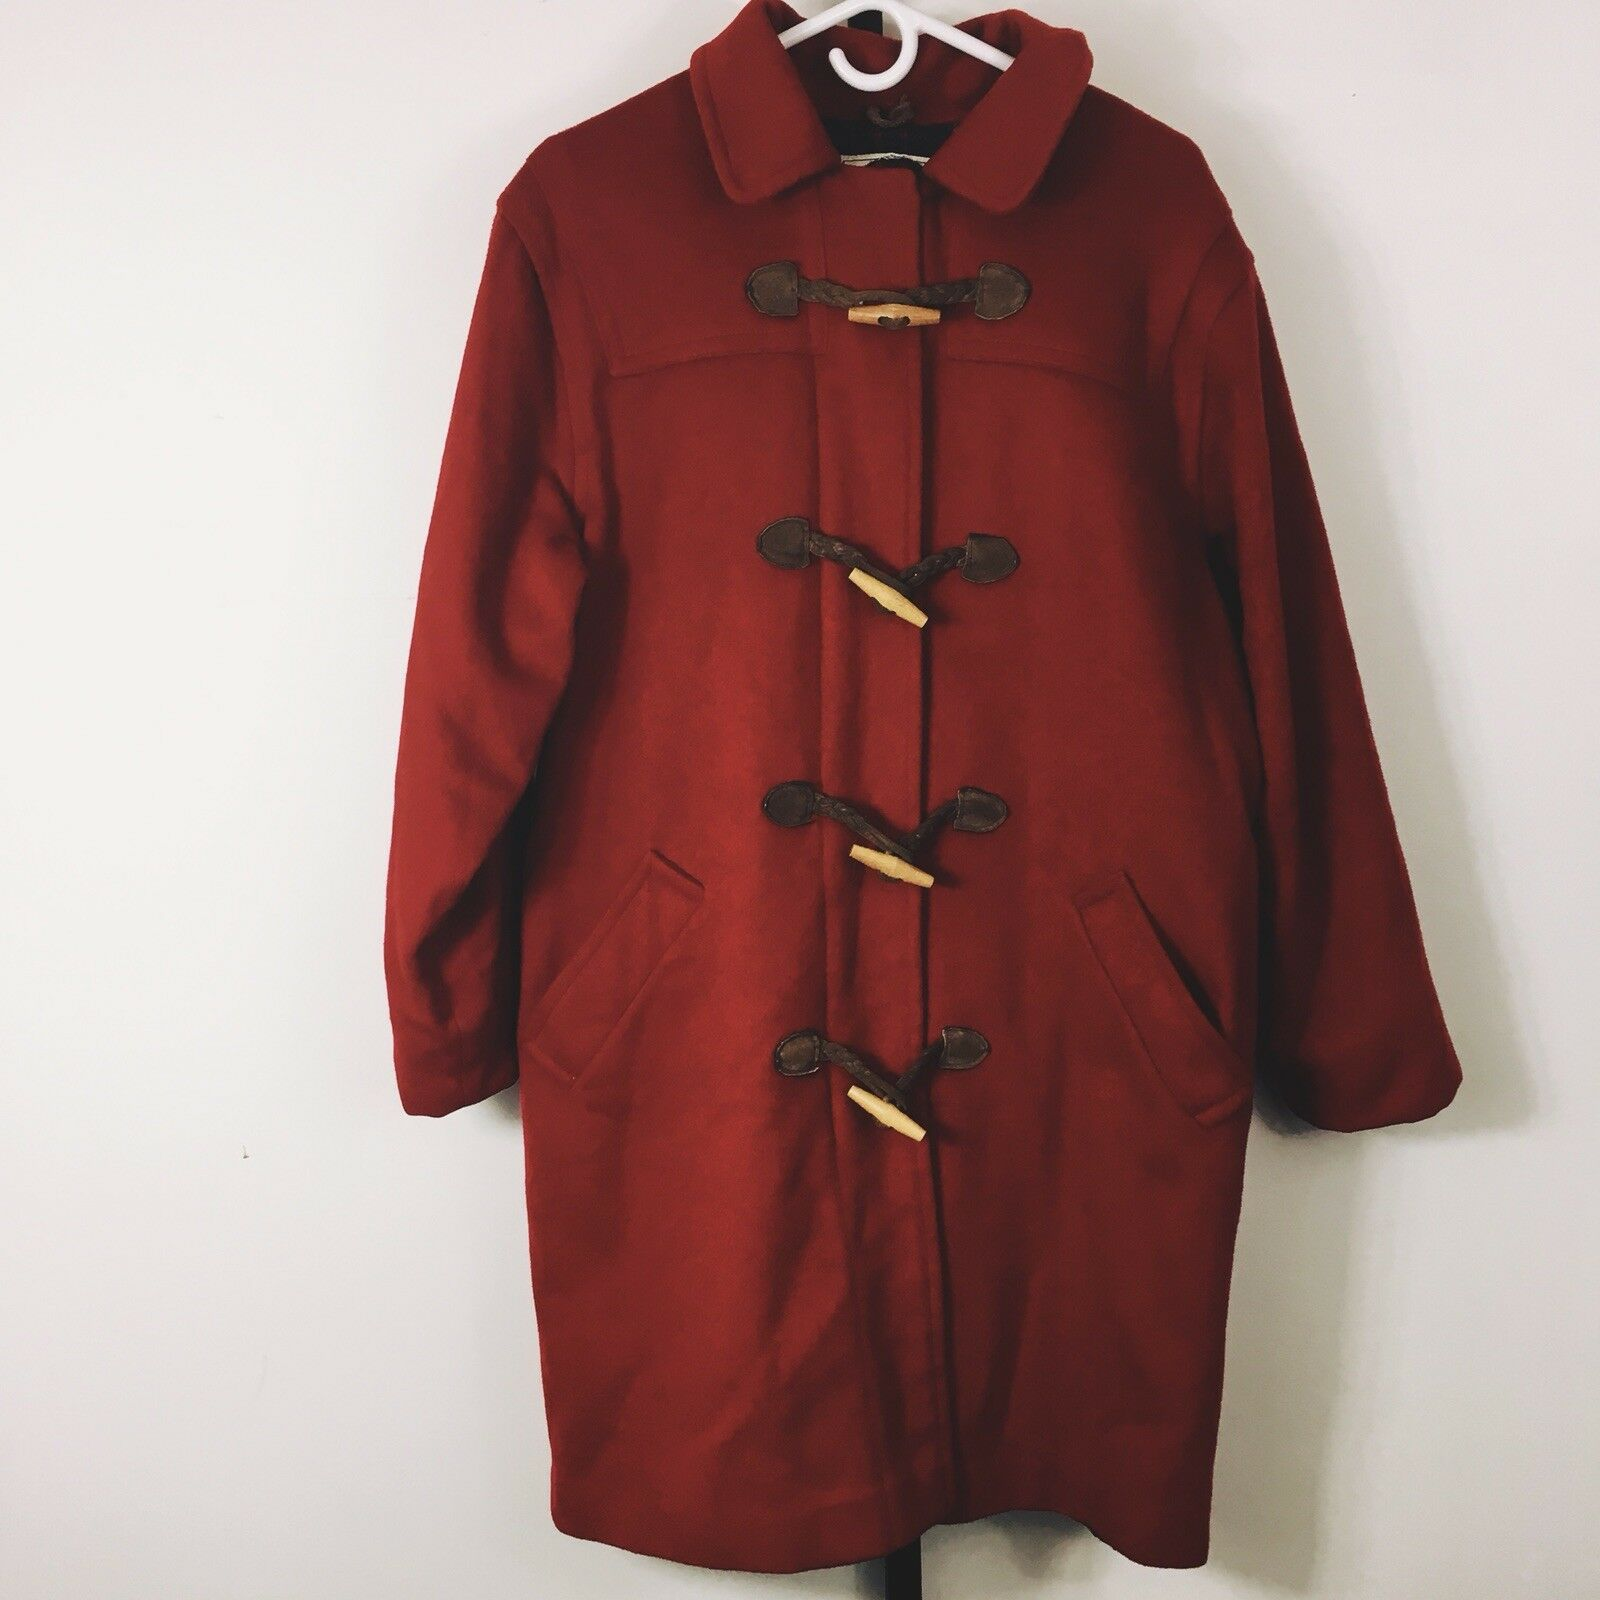 Vintage LL Bean Wool Toggle Coat 10 Red Plaid Lining Hooded Knee Length USA Made